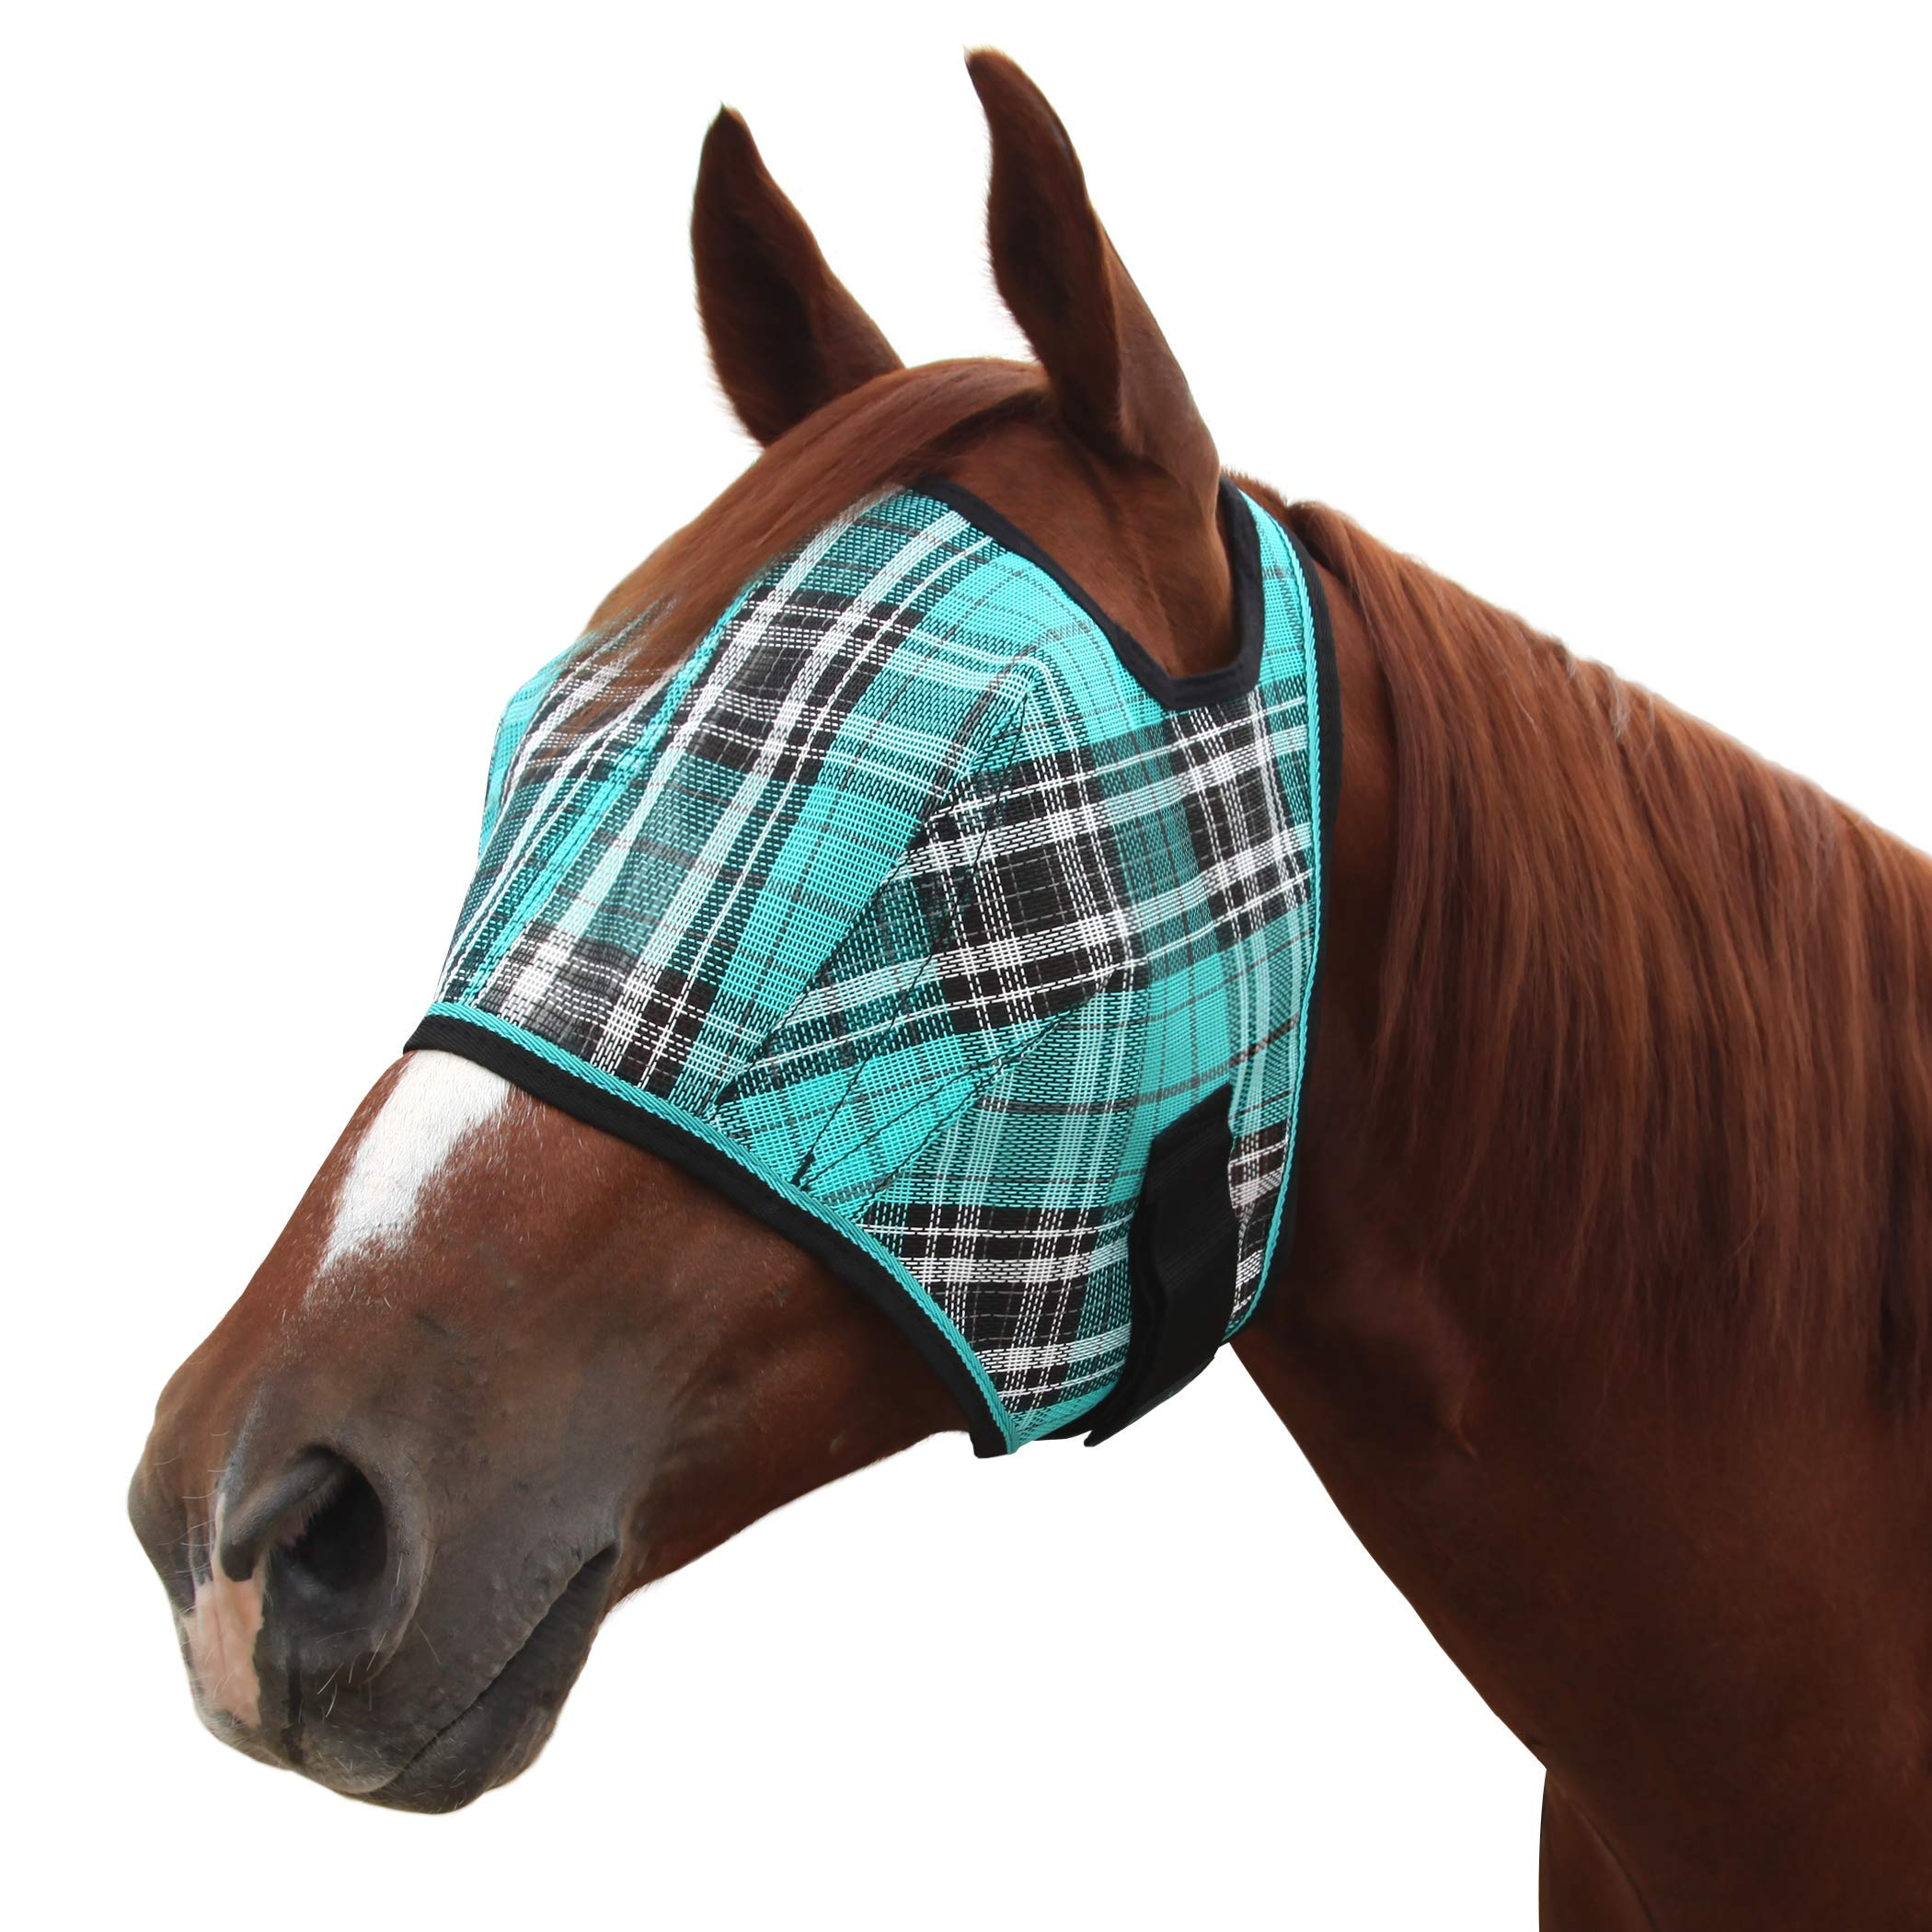 Kensington Fly Mask Web Trim - Protects Horses Face and Eyes from Biting Insects and UV Rays While Allowing Full Visibility - Ears and Forelock Able to Come Through The Mask (XX-Large, Black Ice)